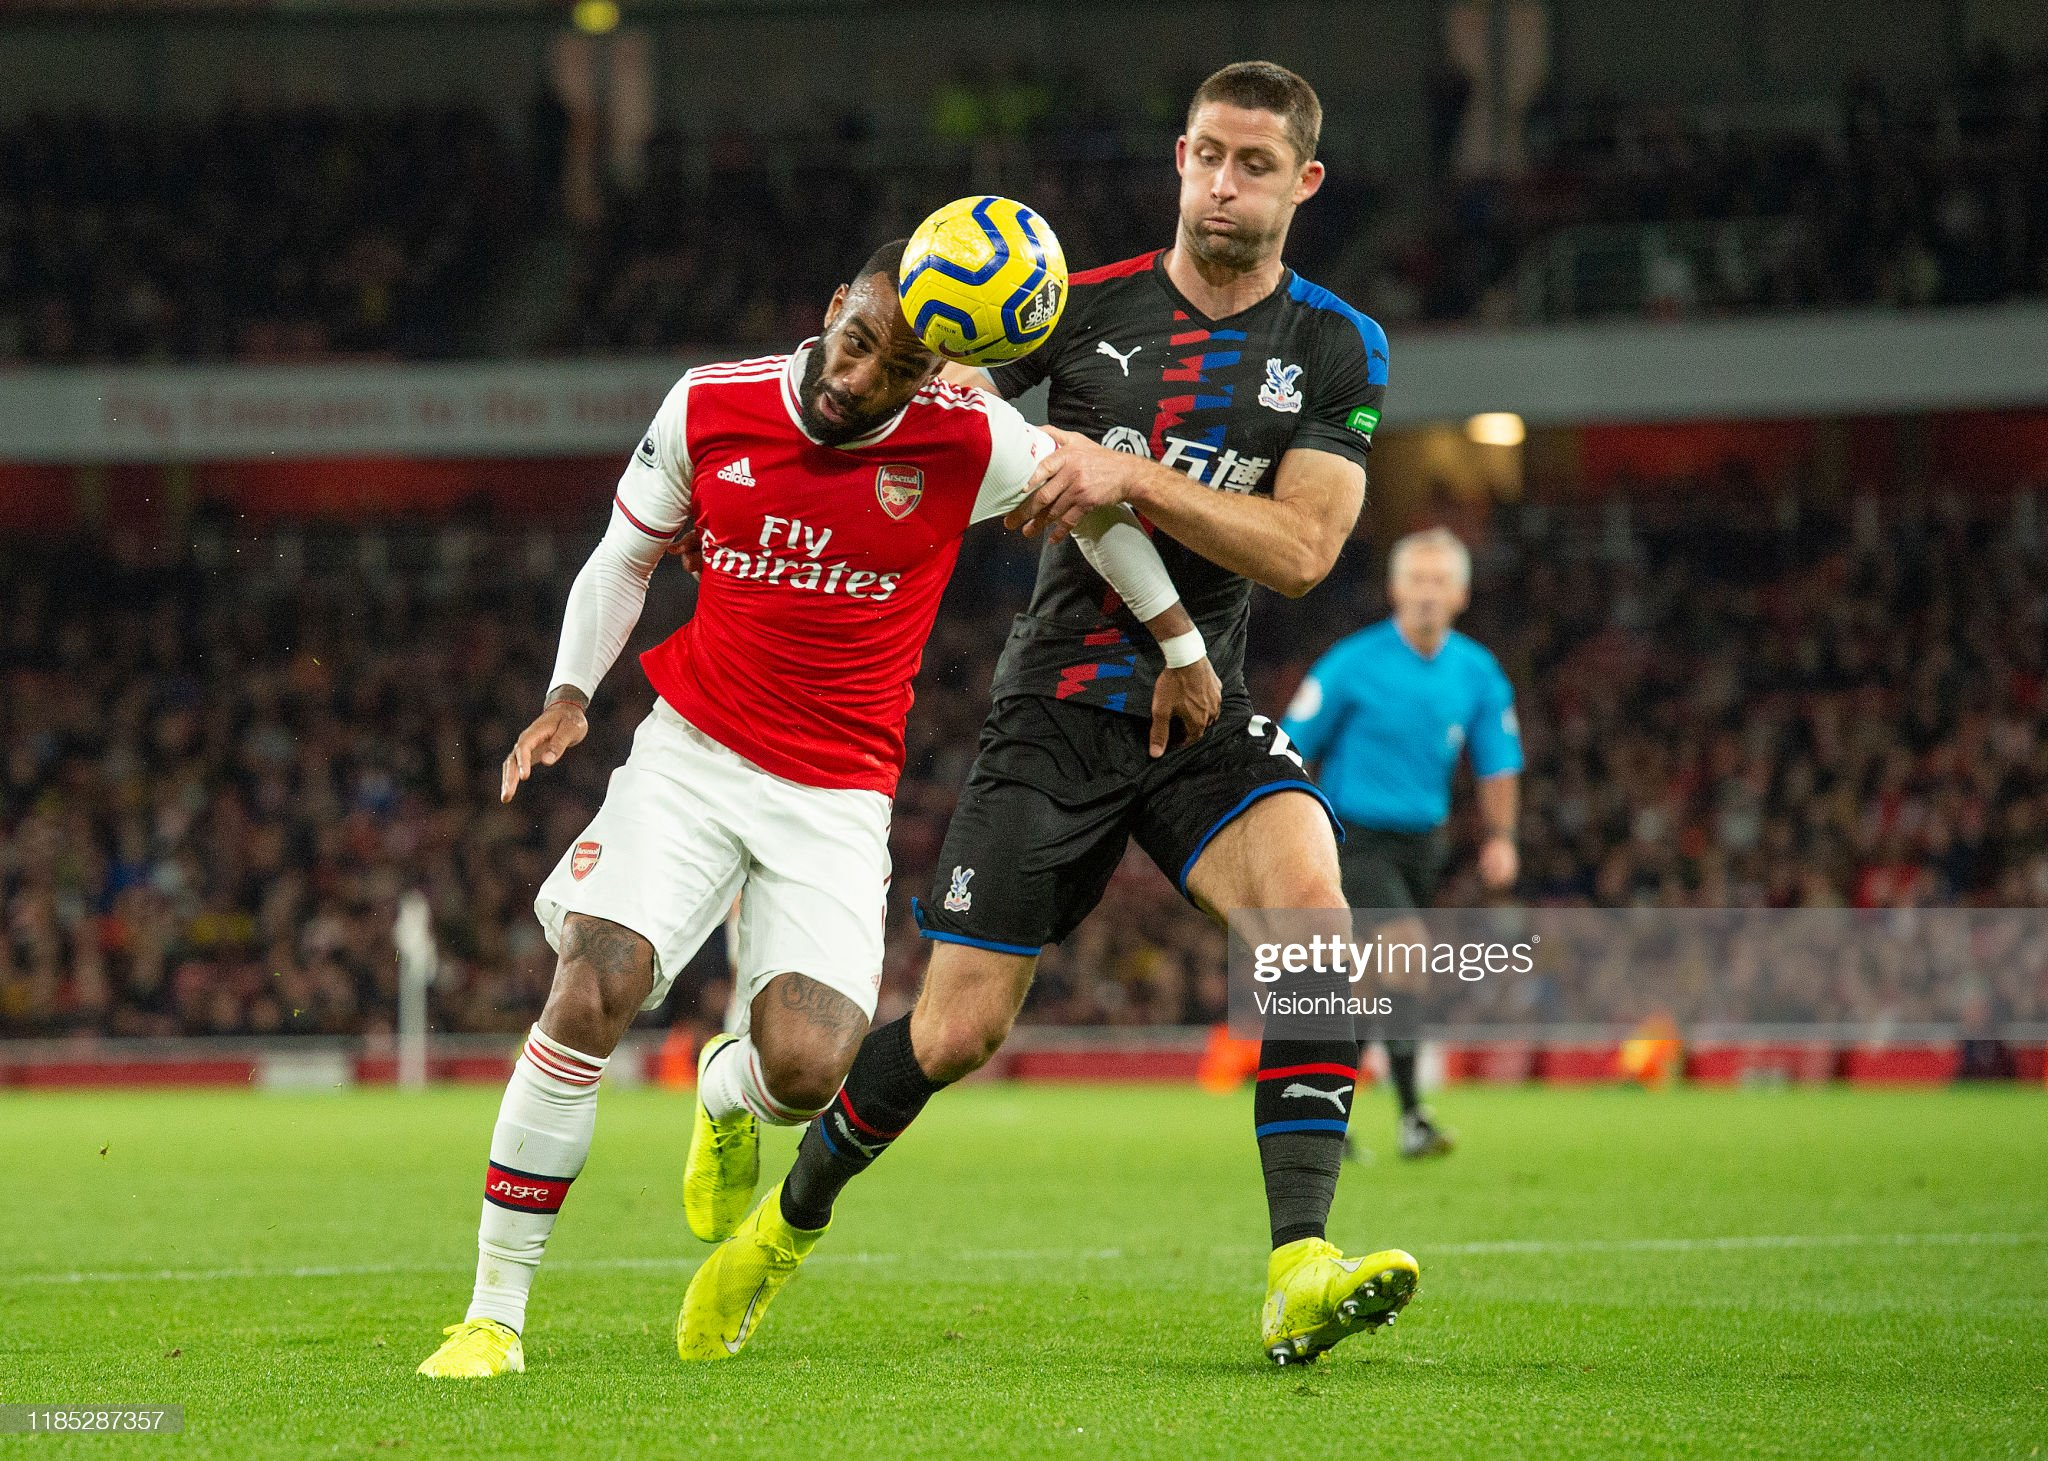 Crystal Palace v Arsenal preview, prediction and odds